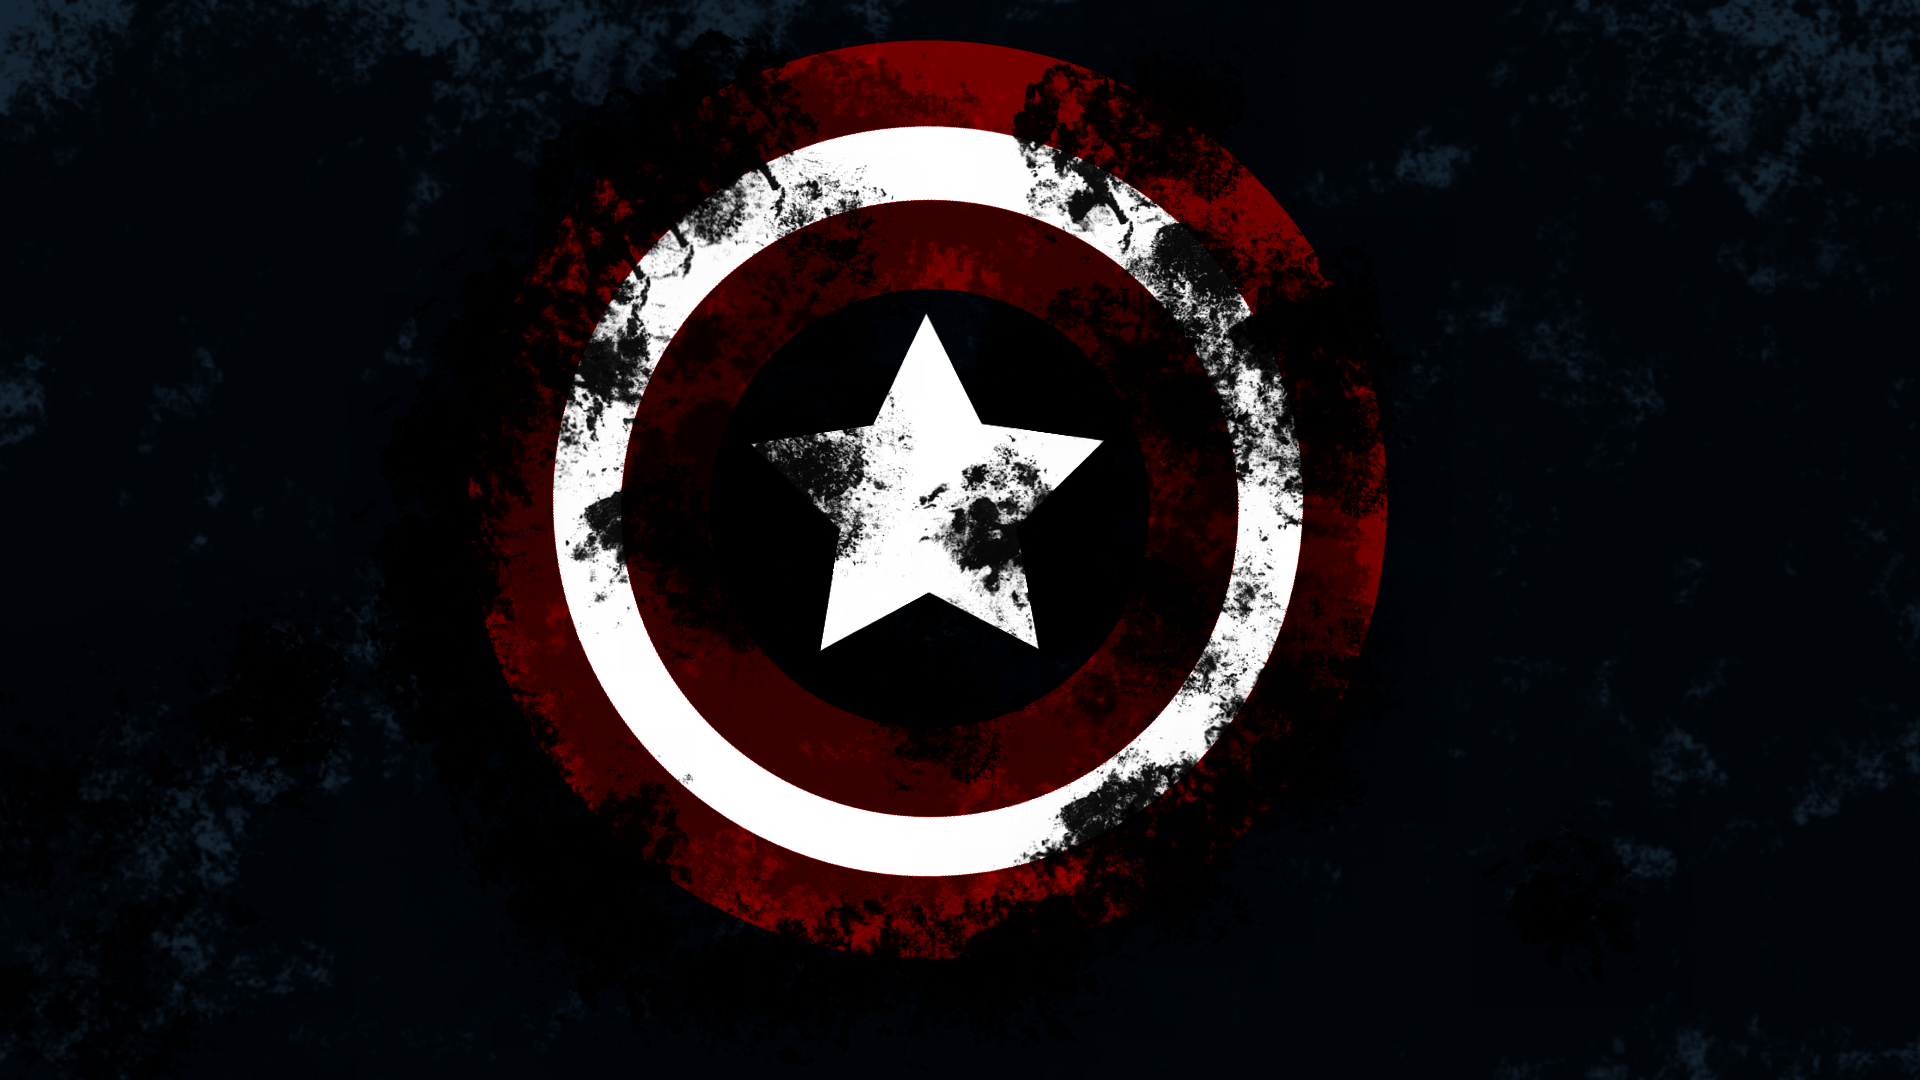 1080x1920 The Avengers Captain America HTC hd wallpaper. 1080x1920 The Avengers ...